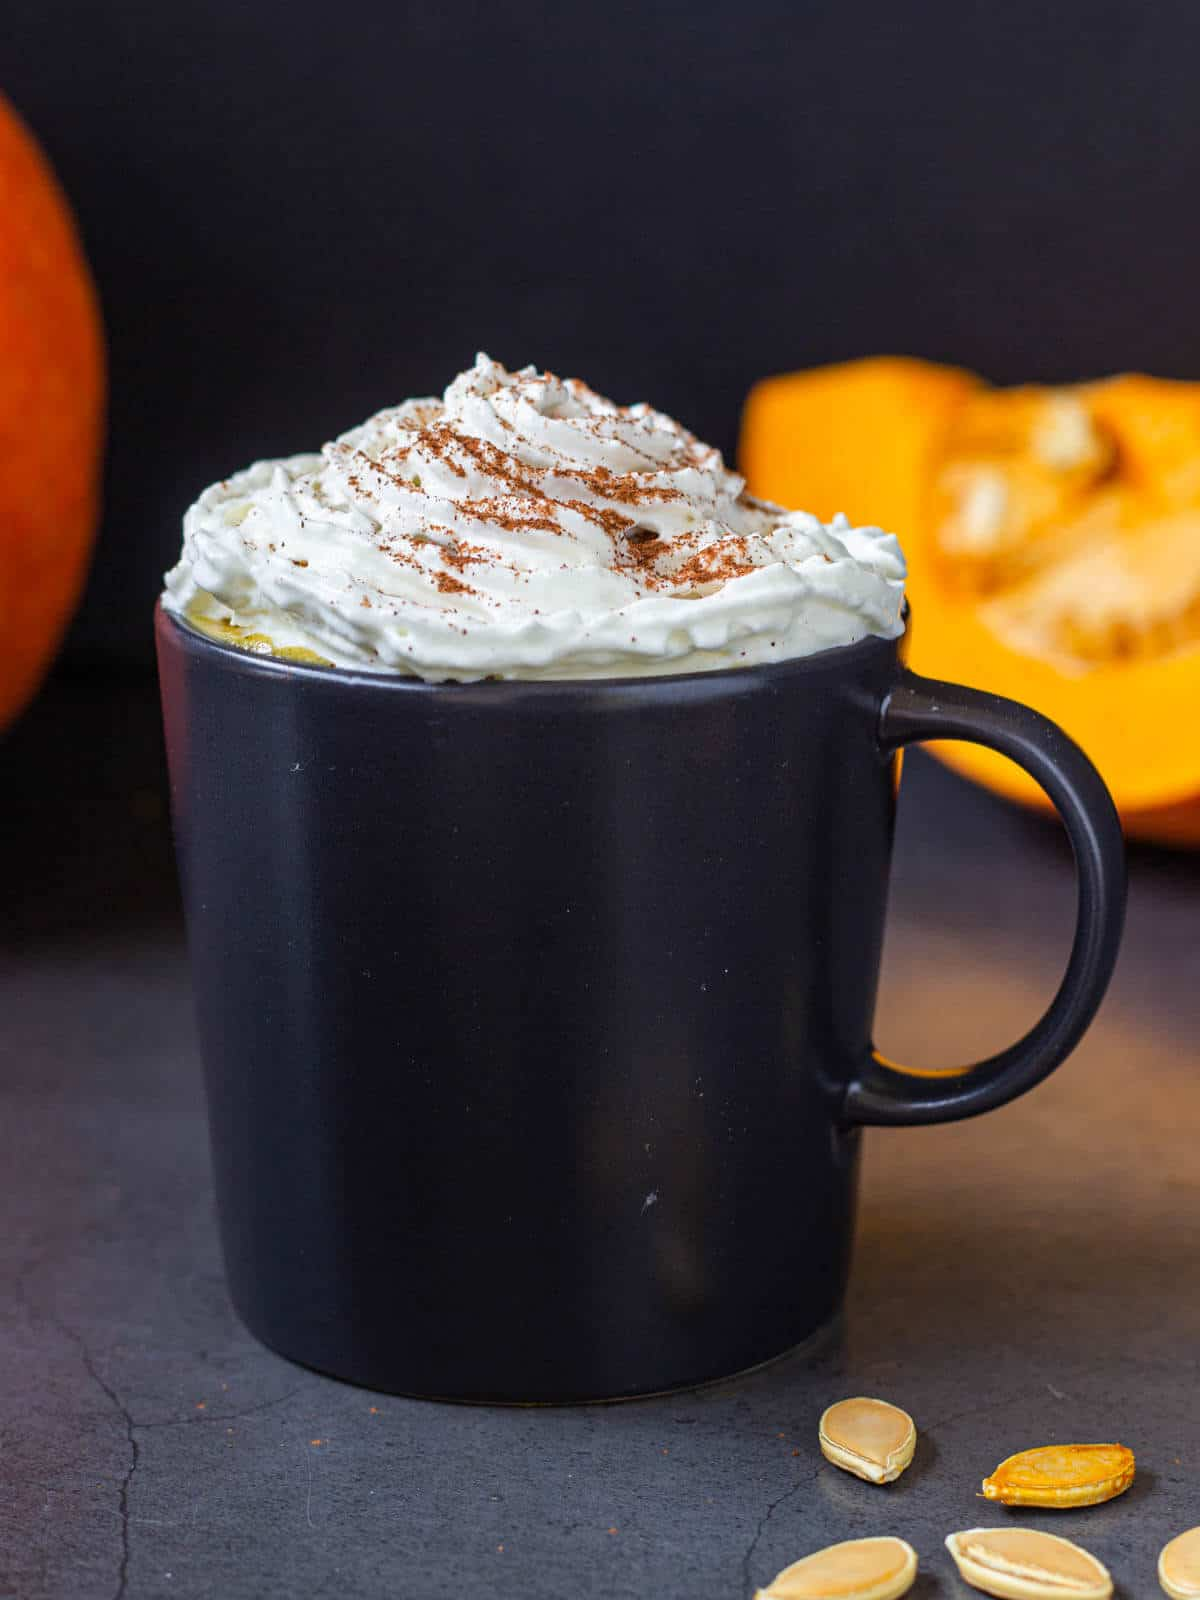 pumpkin spice latte served in mug with whipped cream